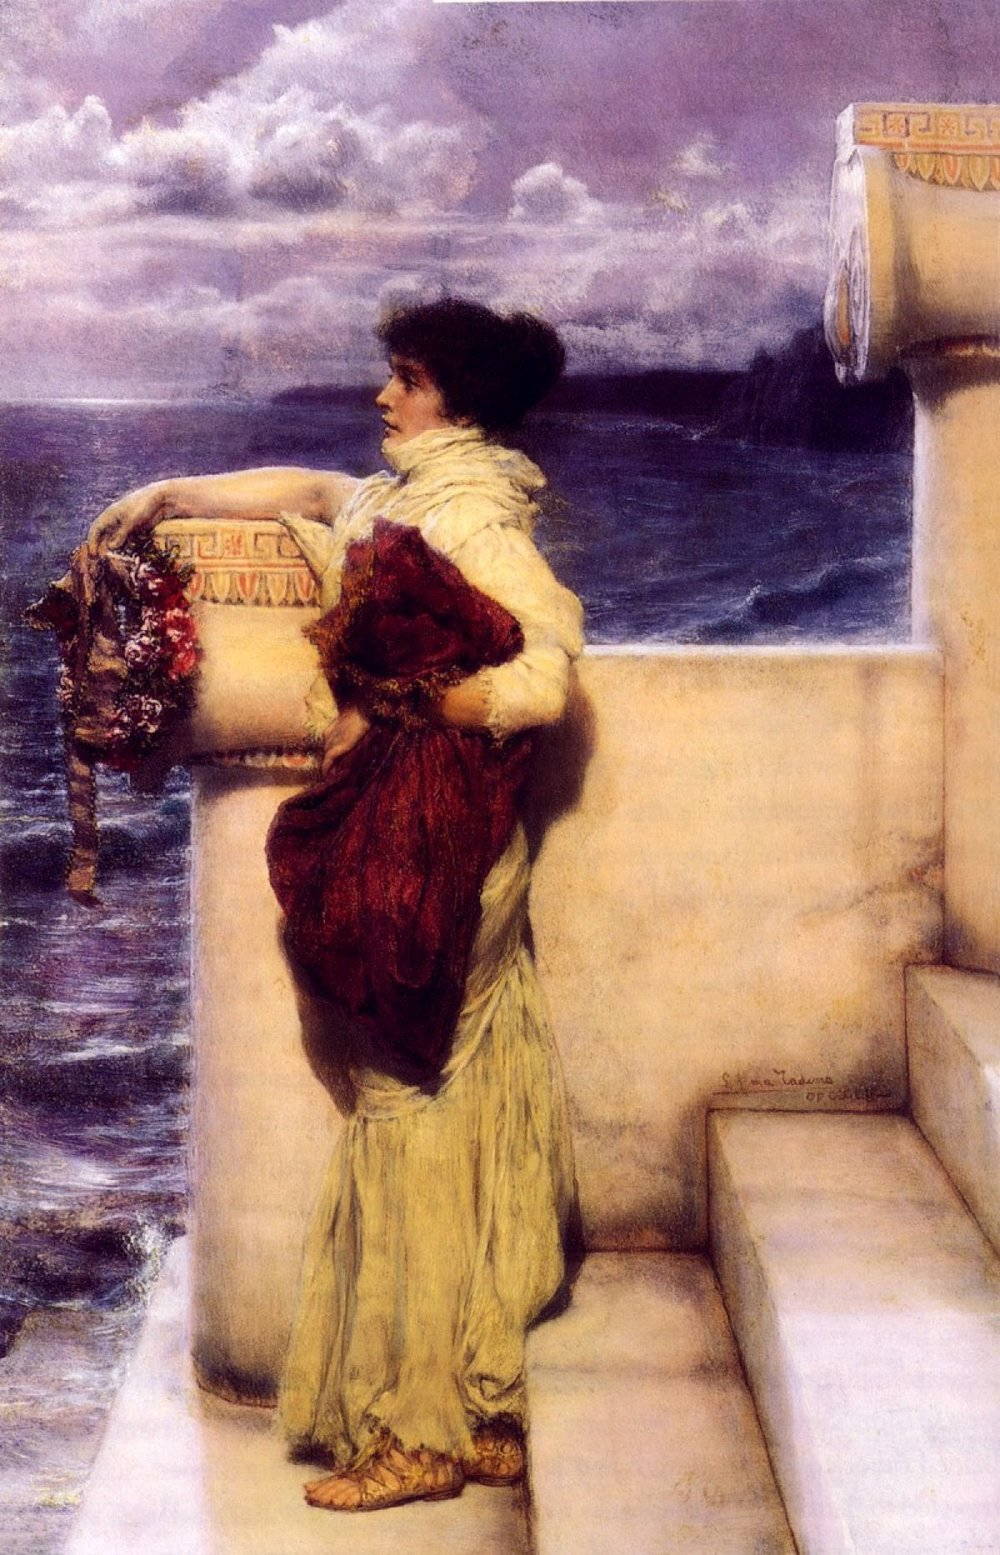 Lawrence Alma-Tadema, Hero, 1898